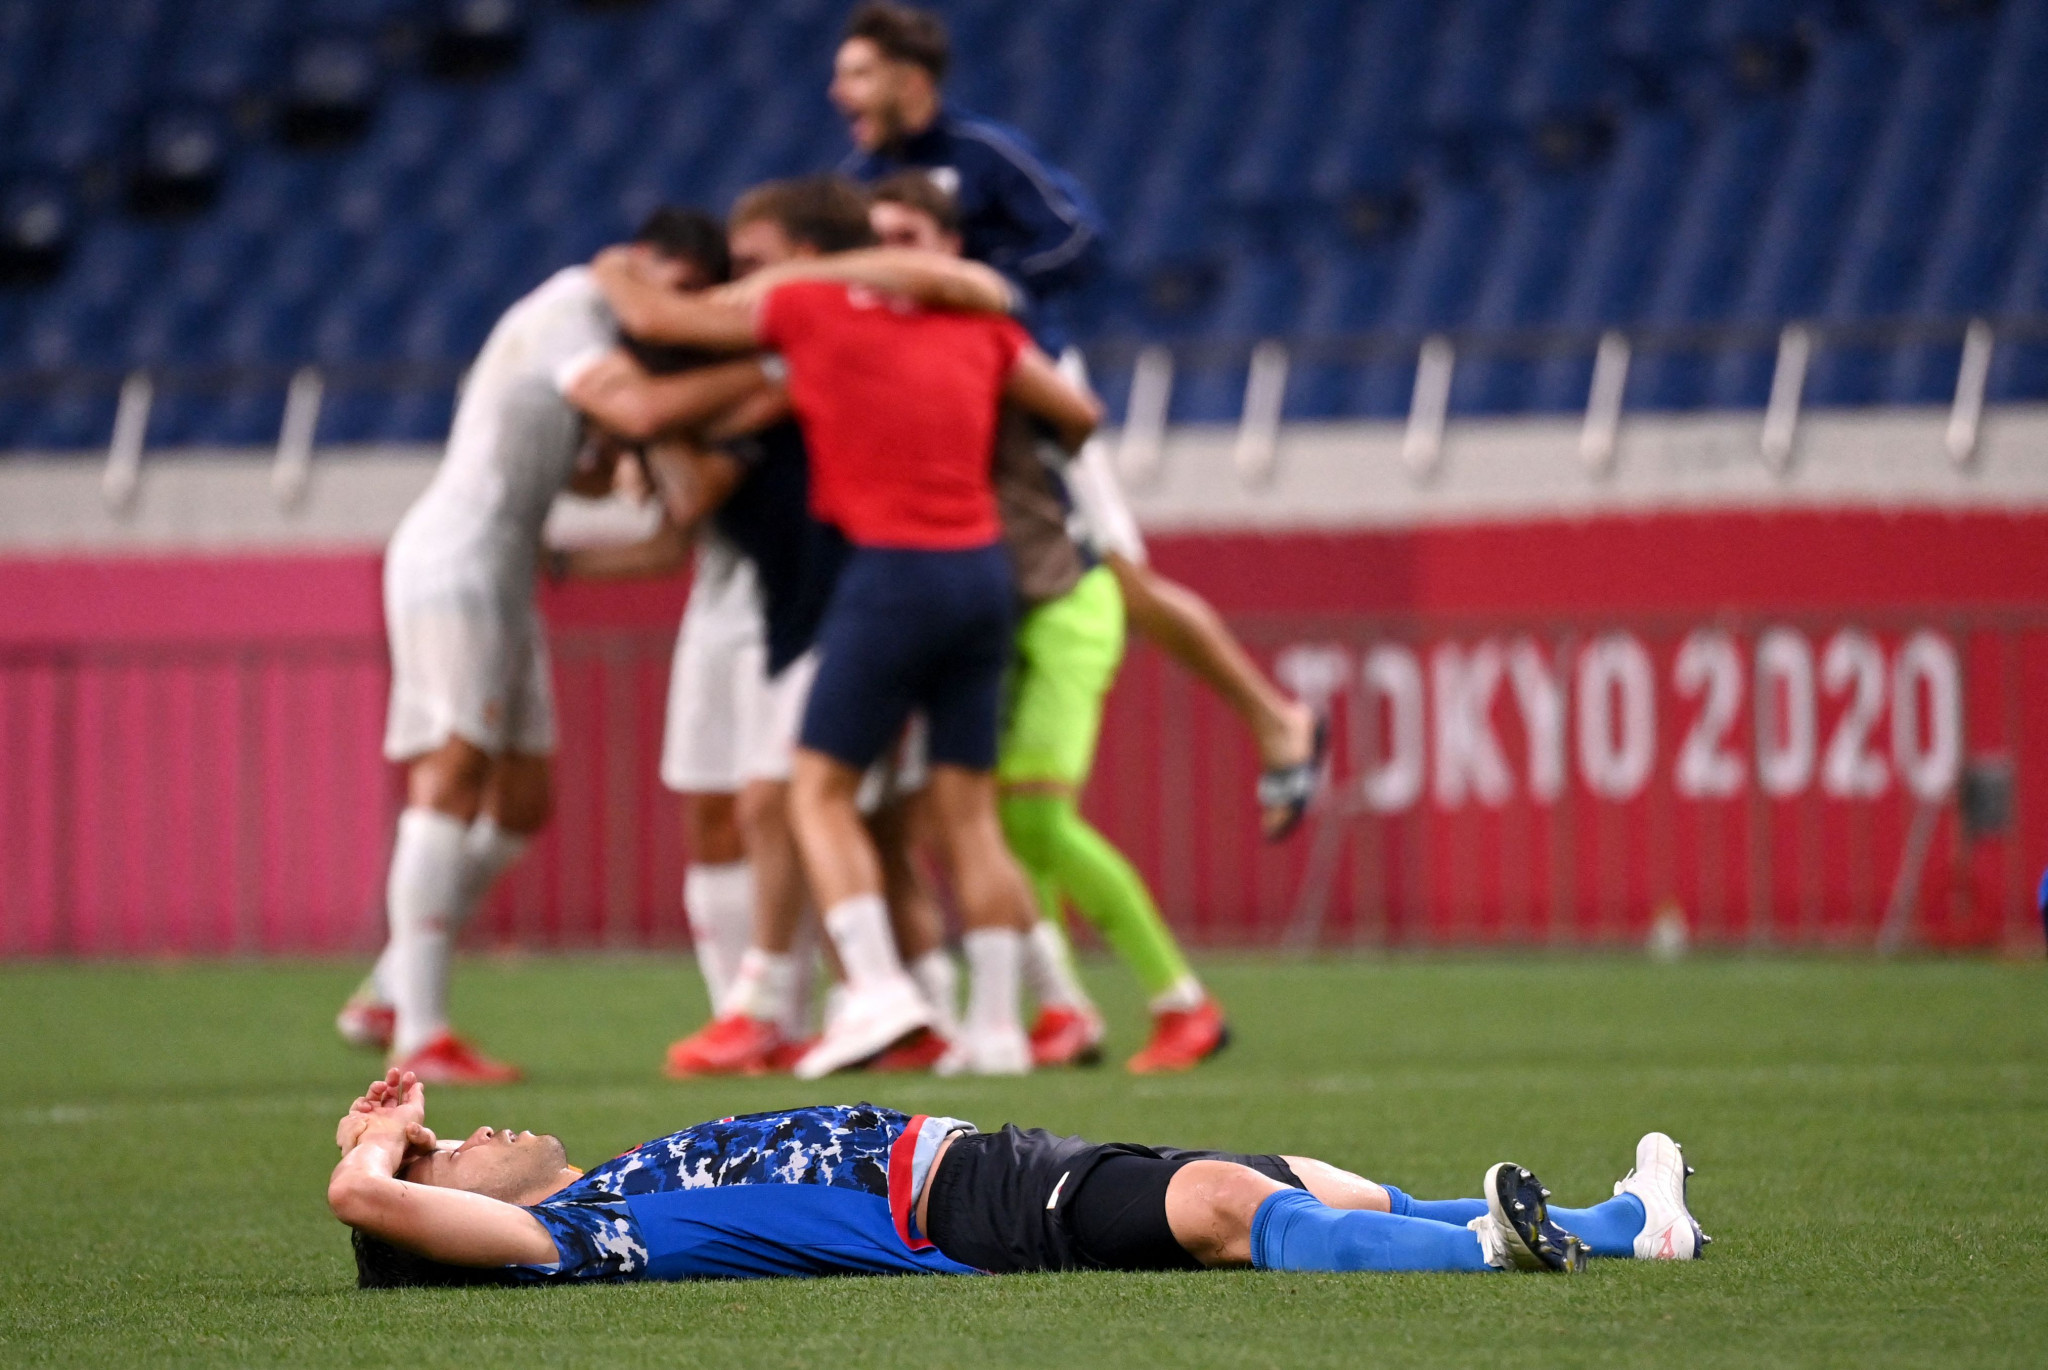 There was heartbreak for Japan in the men's football semi-finals, however, as Spain scored a 115th-minute goal to defeat them 1-0 and set up a final versus Brazil ©Getty Images